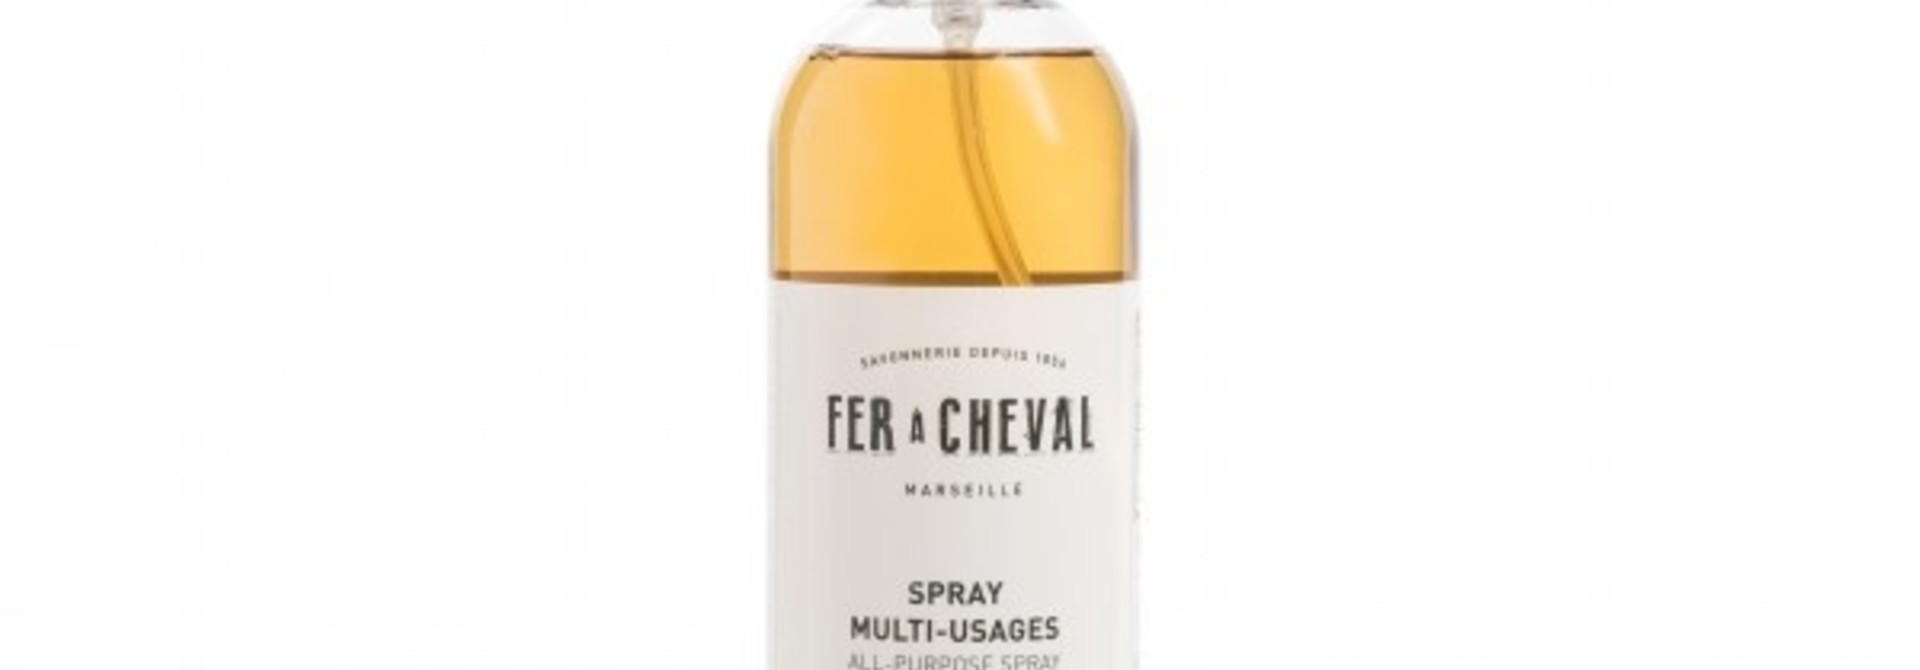 Spray allesreiniger met marseille zeep 500ml